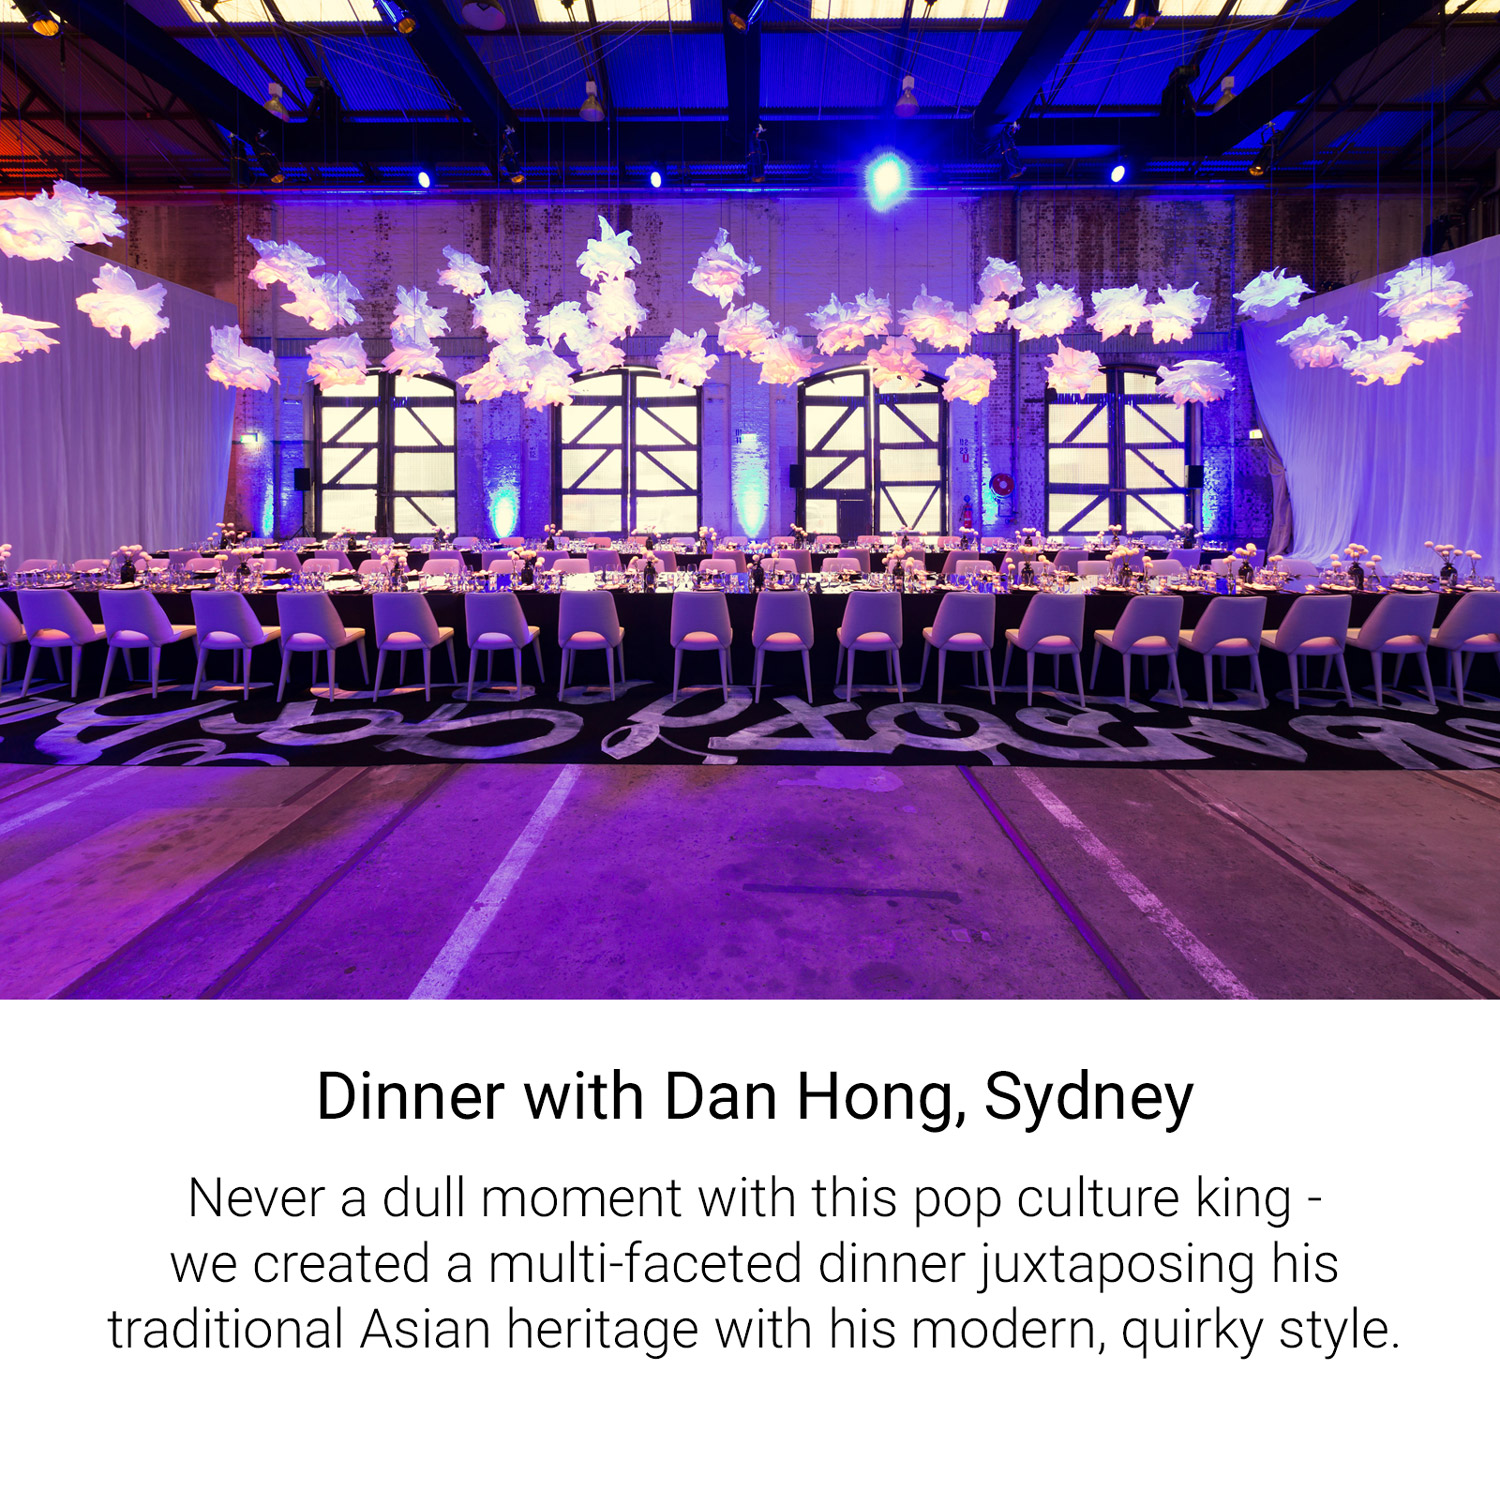 Dinner with Dan Hong, Sydney